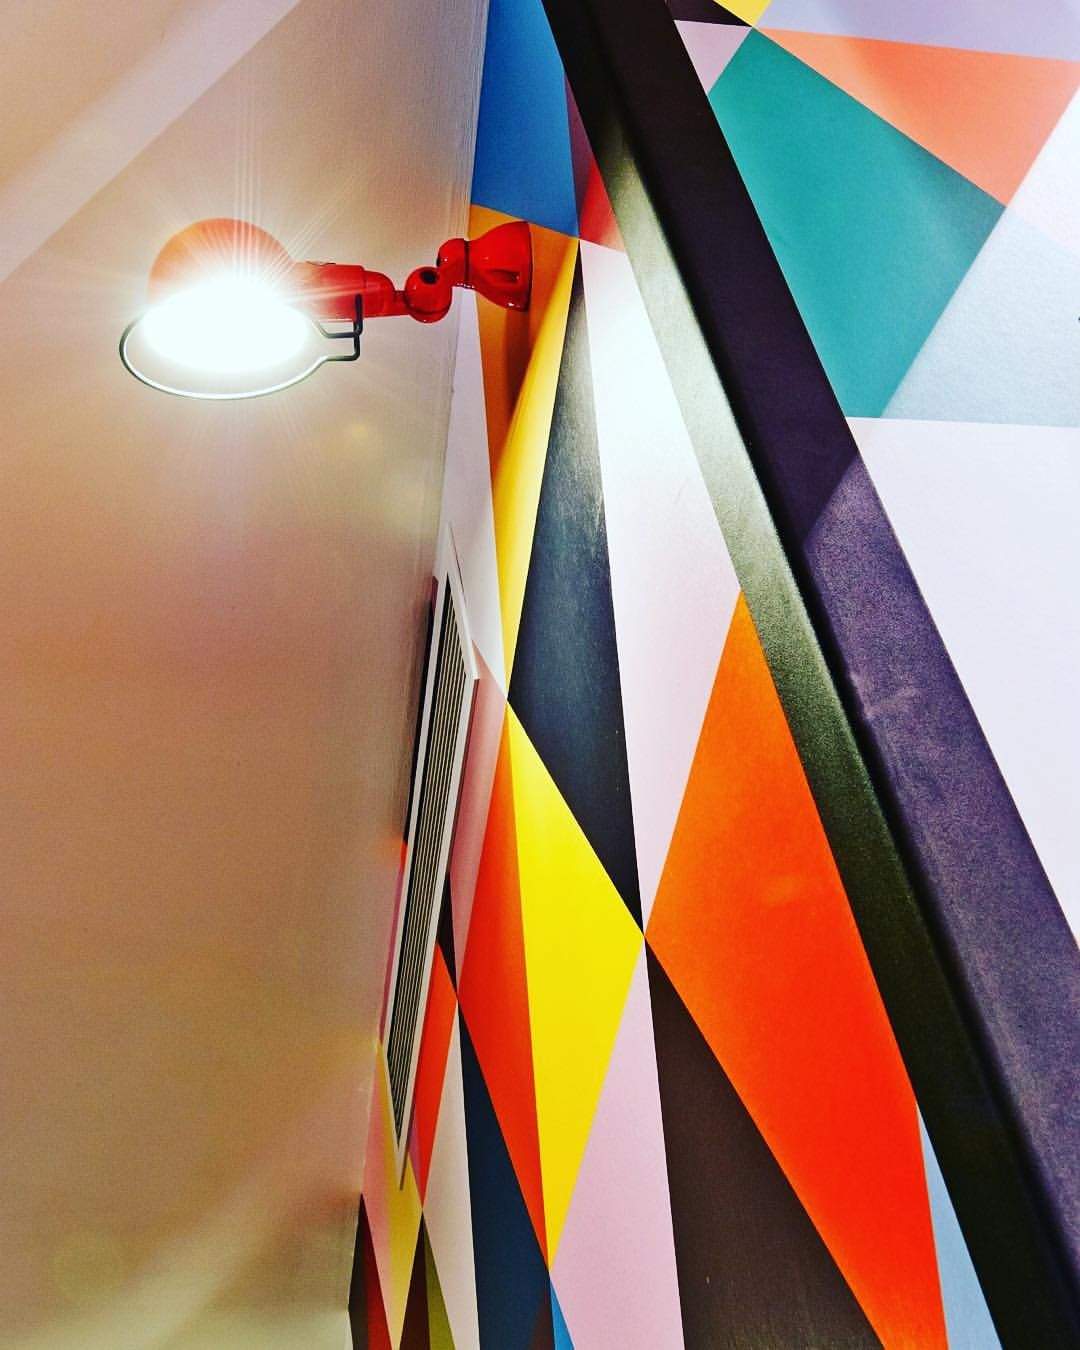 very cool @jieldeofficiel light that we put in our thornbury job   electrical wiring done by @theelectriccrew #interiordesign #jielde #design  #electrician